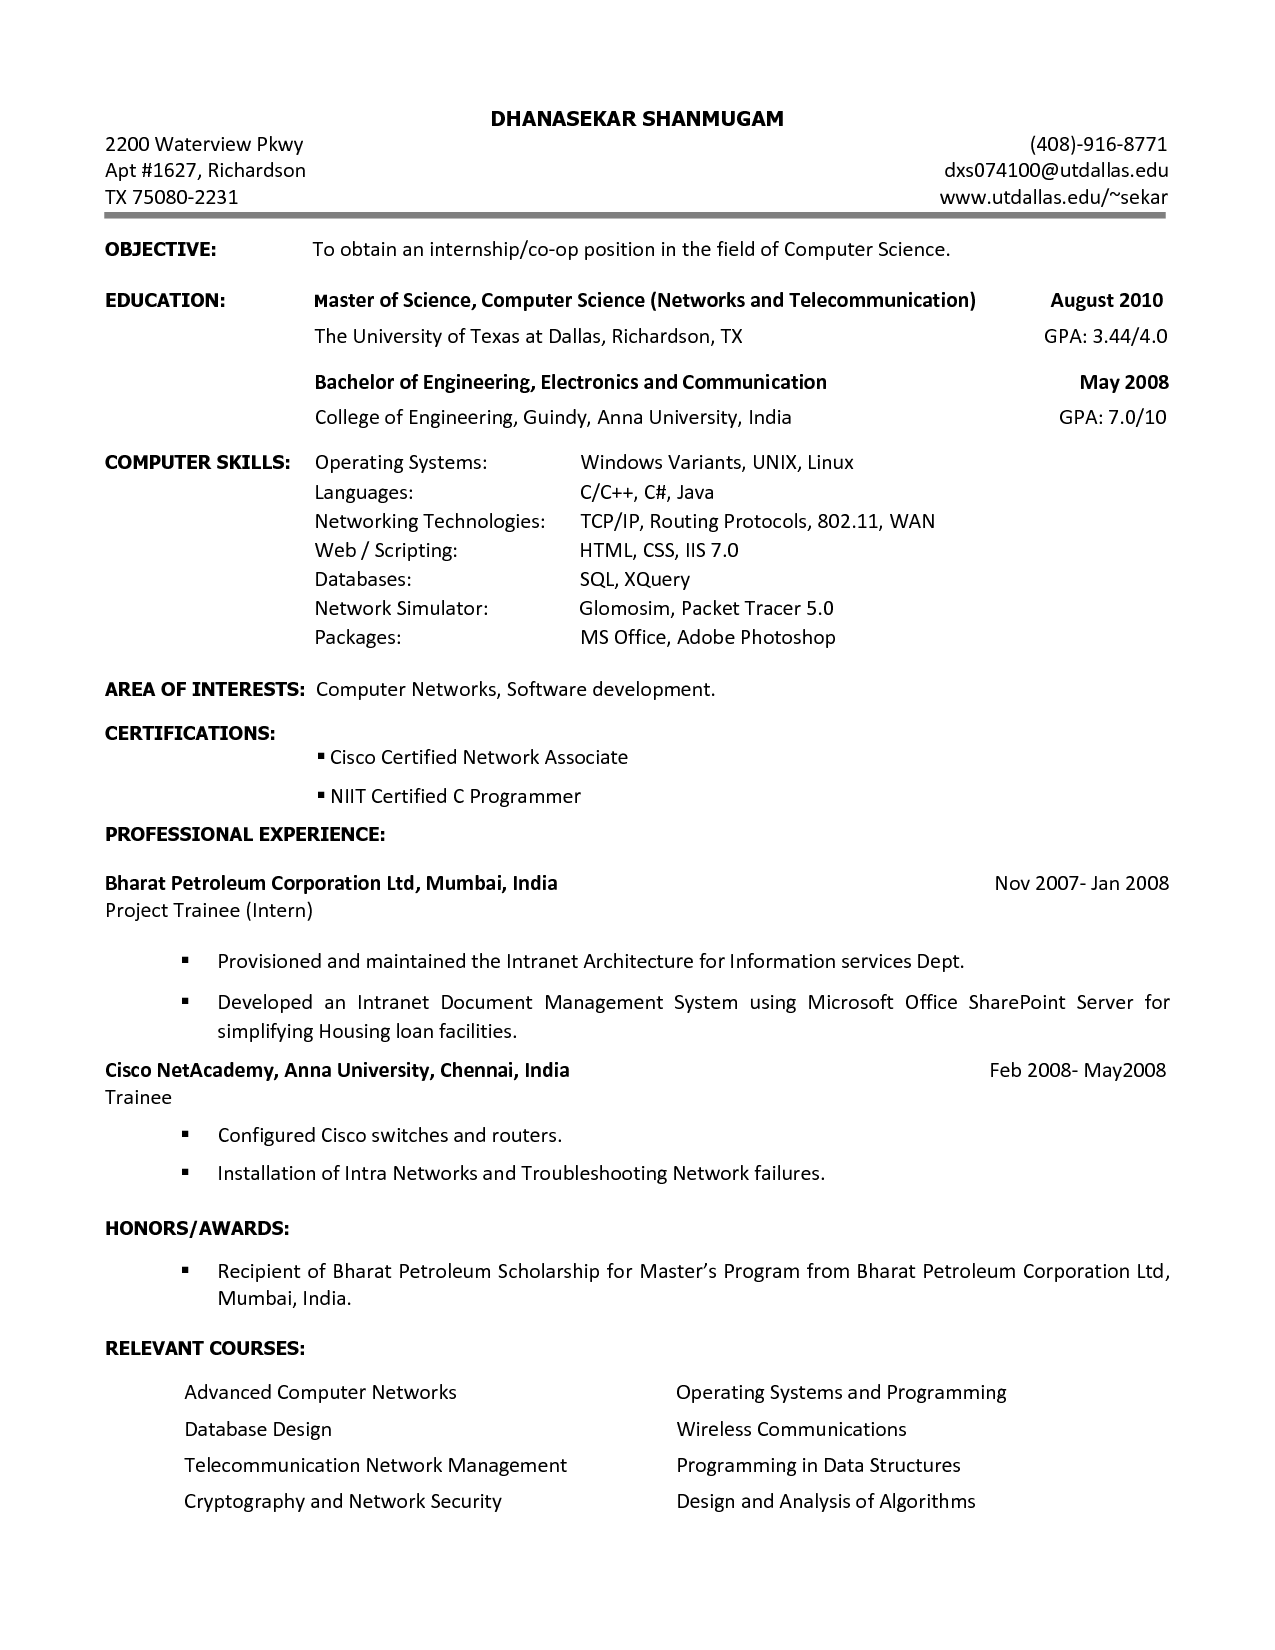 Wonderful Resume Builder Resume Builder Free Download, Free Resume Builder, Resume  Templates, Resume Builder Free Download Windows 7, Free Resume Builder  Download ...